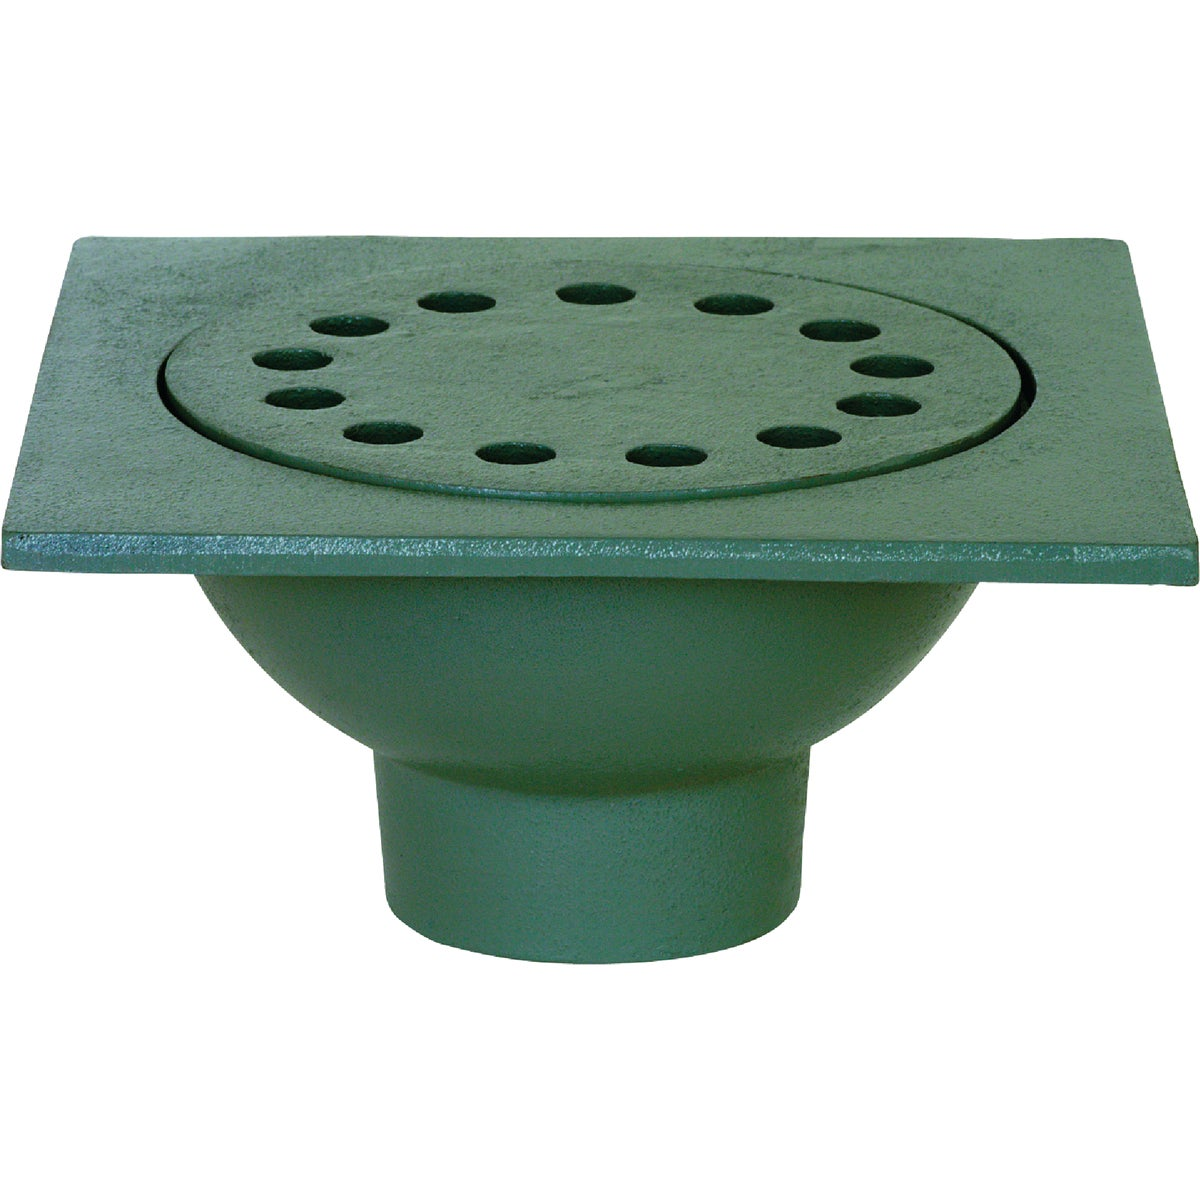 9X9 CAST IRON BELL TRAP